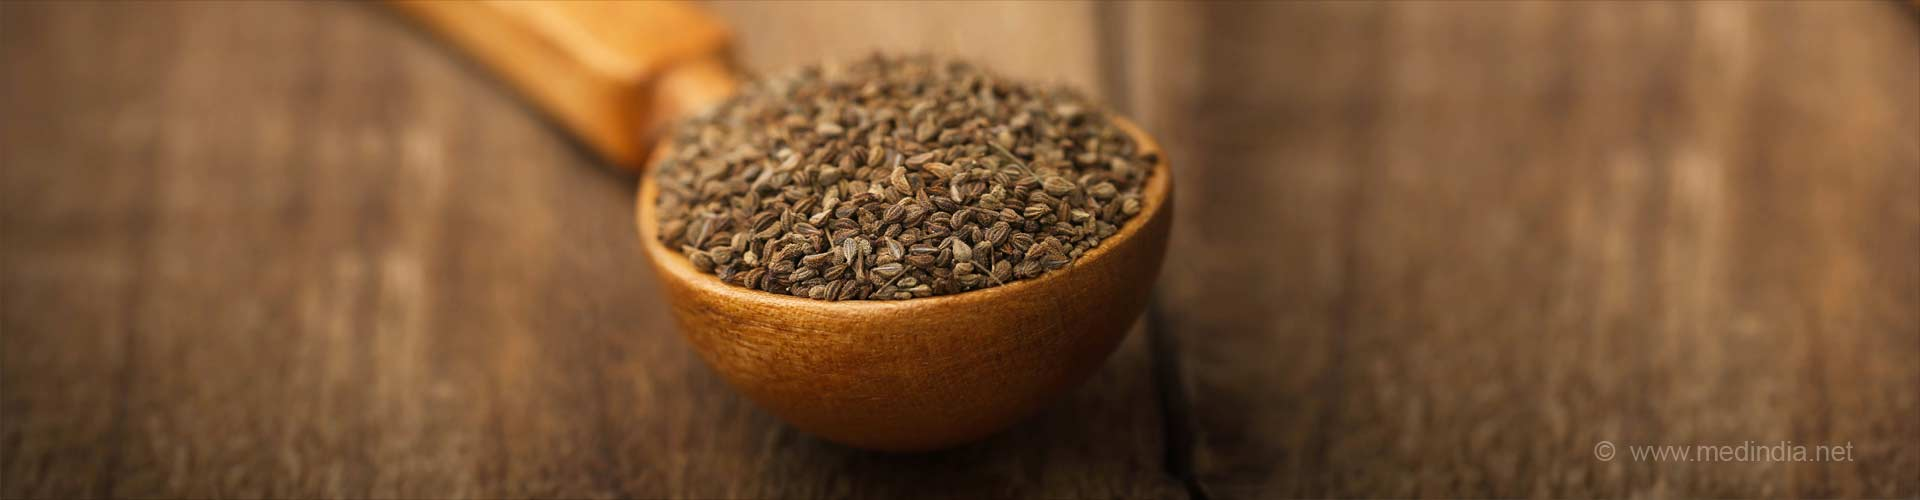 Top 10 Significant Health Benefits of Ajwain / Carom Seeds